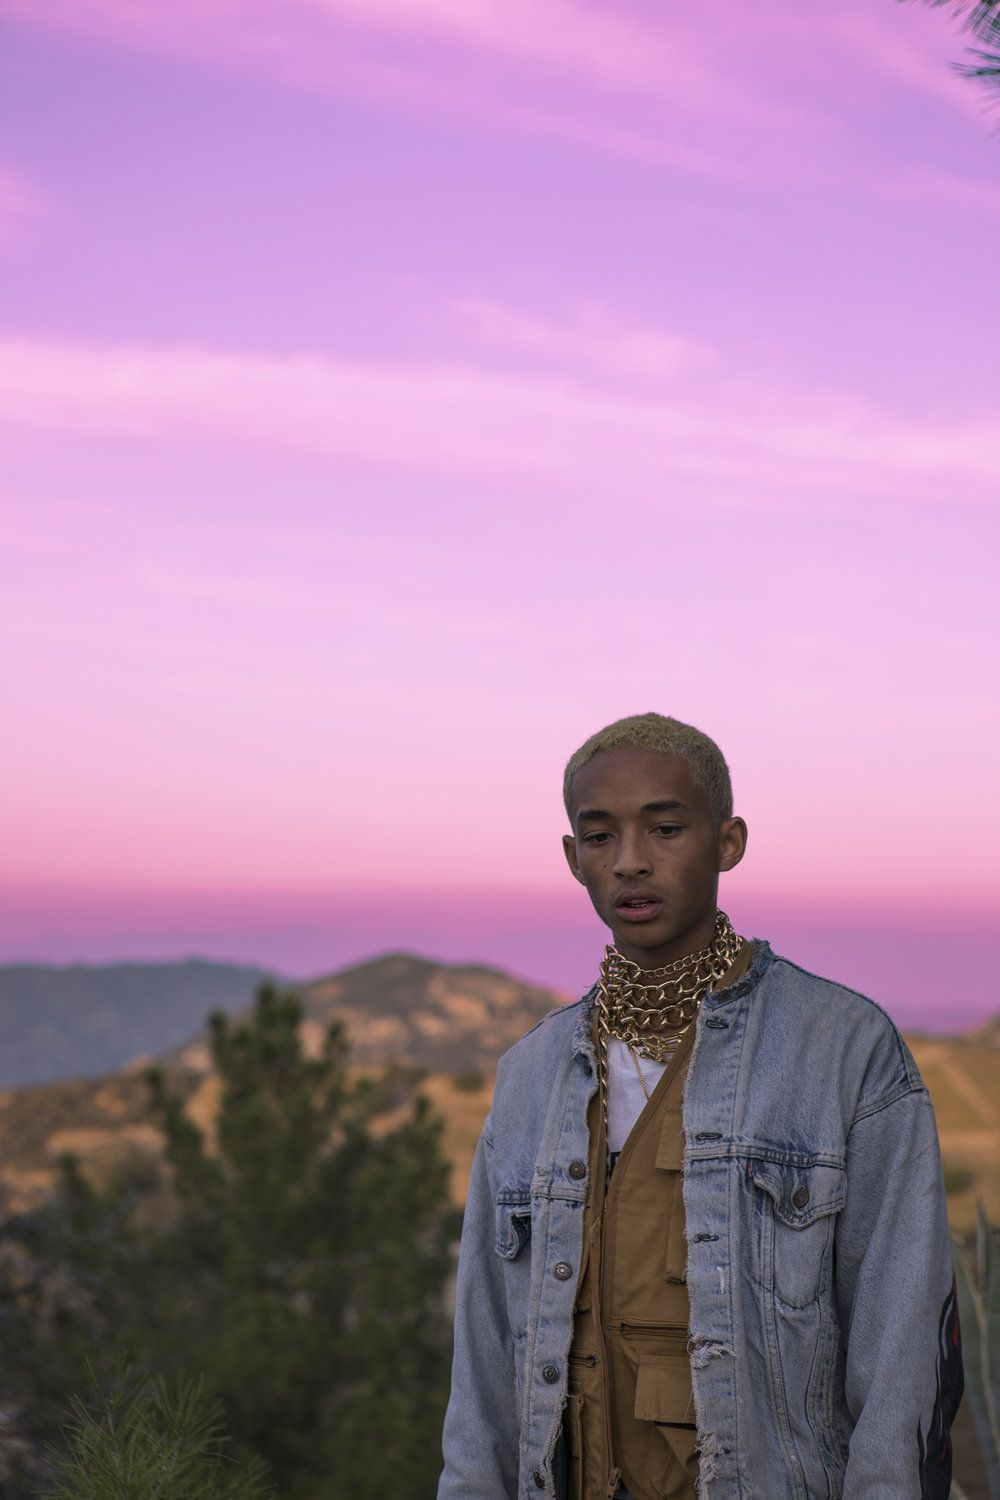 Image Result For Jaden Smith Sunset Jaden Smith Pink Aesthetic Smith